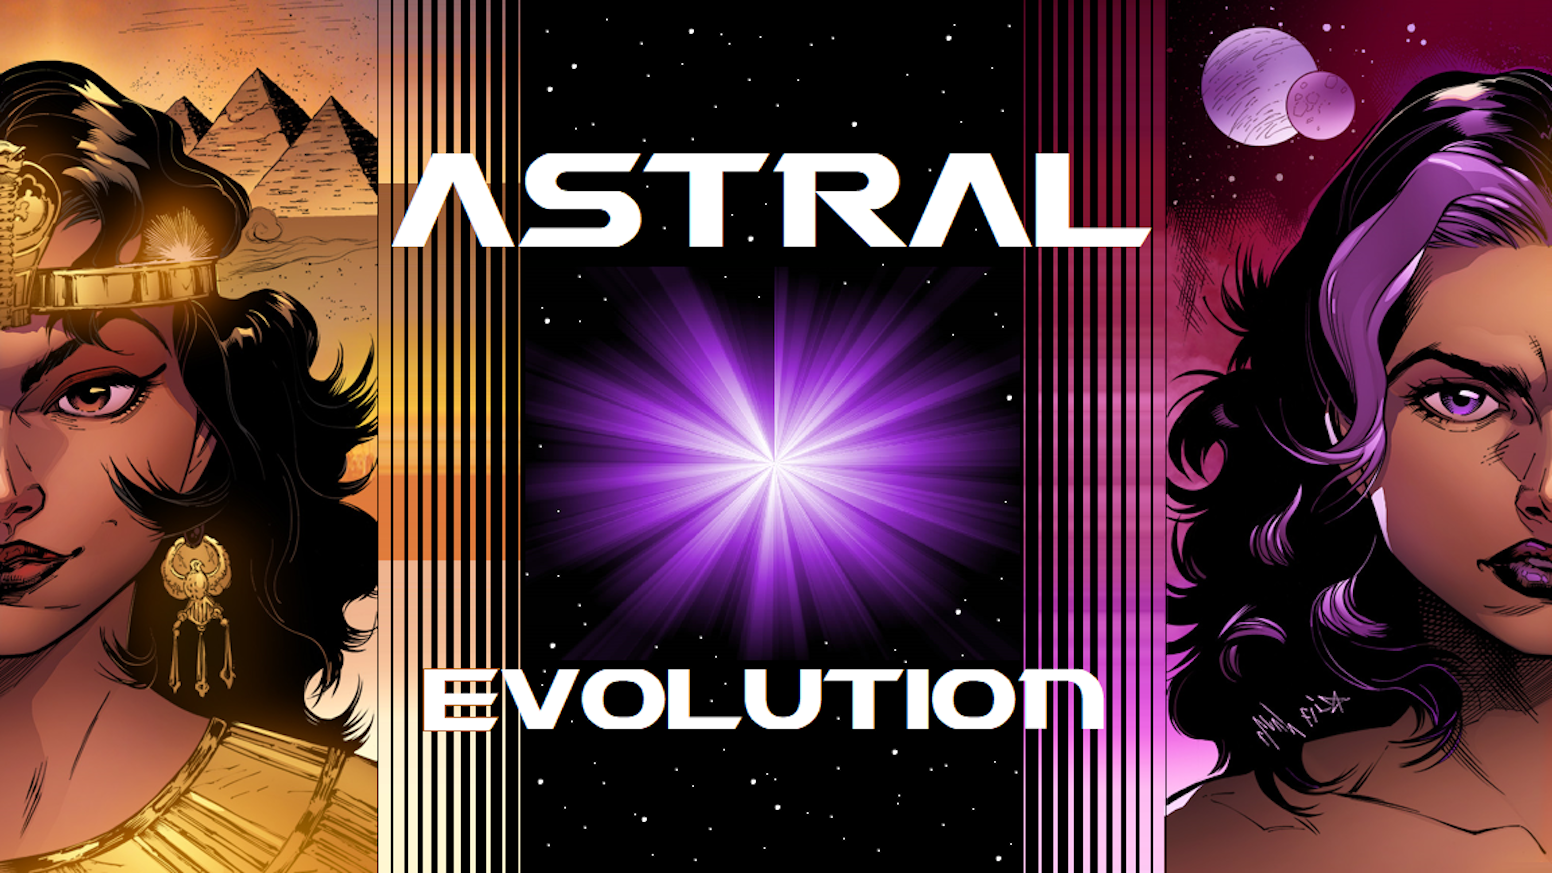 """Complete graphic novel featuring 100 gorgeous full-color pages of thrilling sci-fi action & adventure! """"ASTRAL GENESIS"""" available, too!"""